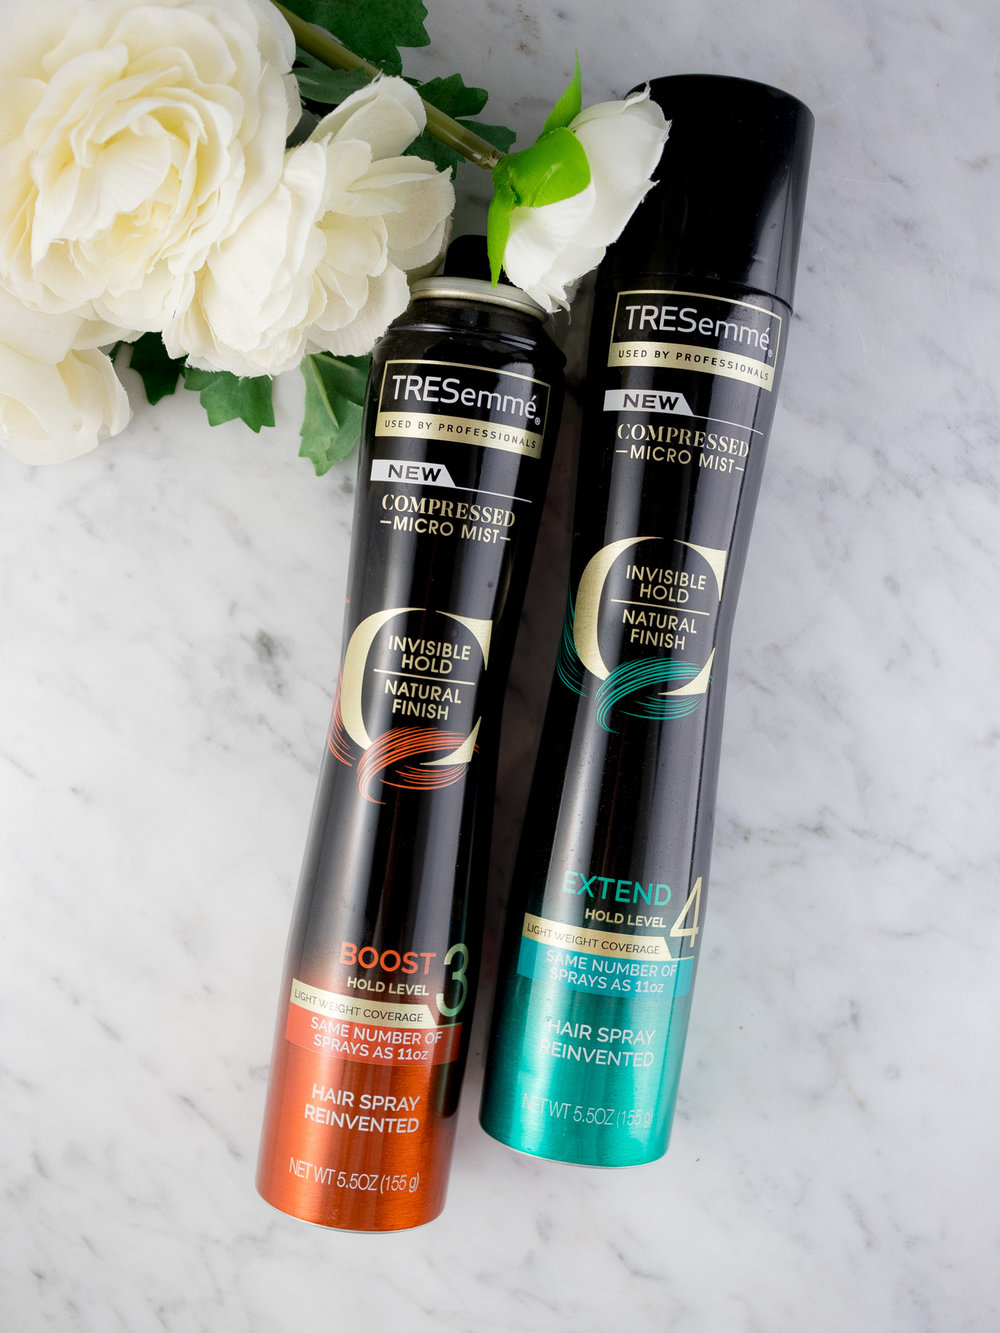 TRESemmé Micro Mist Hair Spray